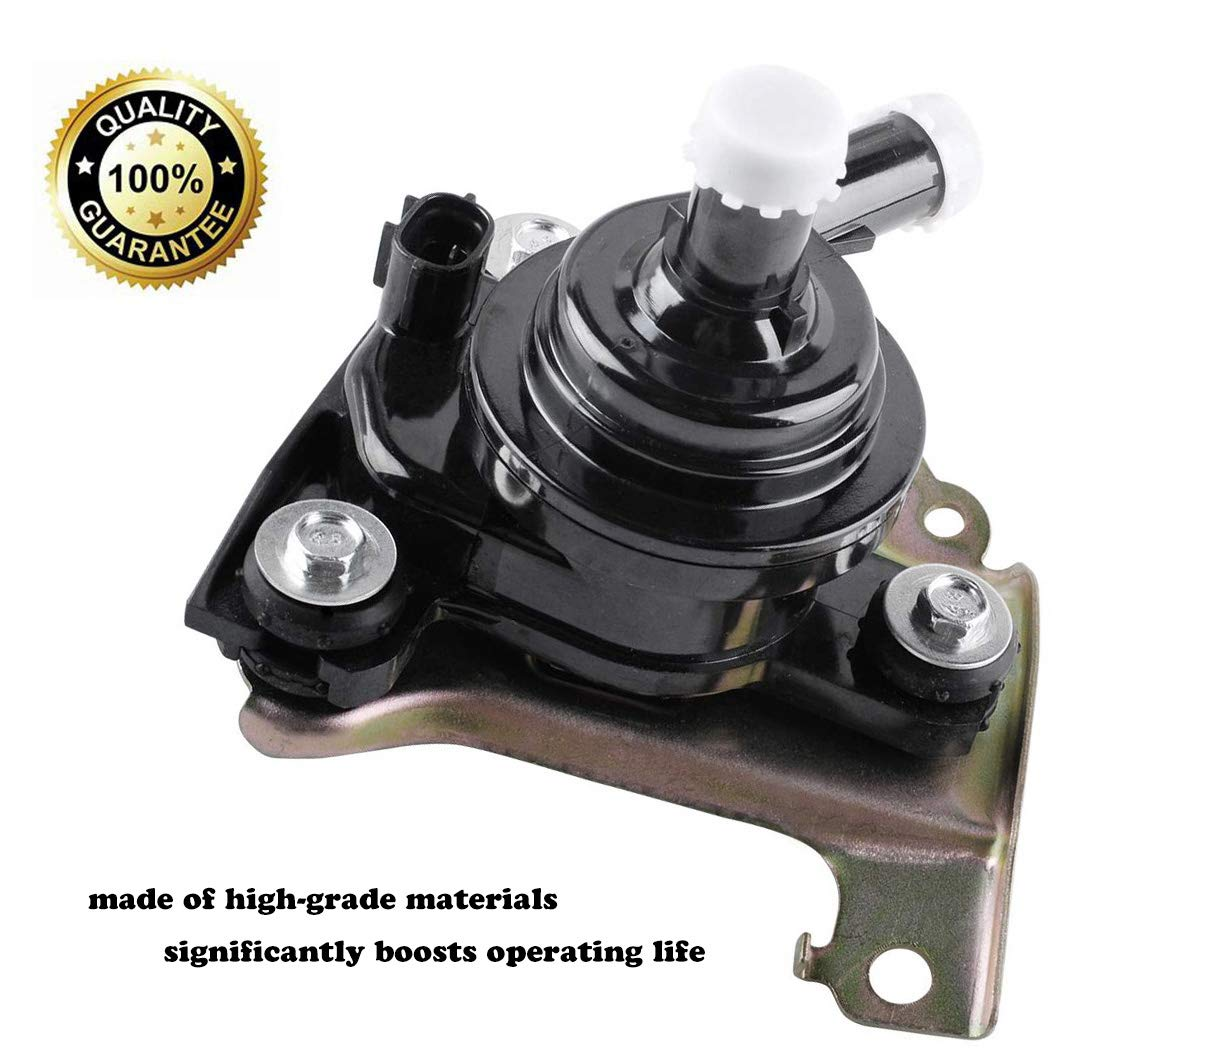 G9020-47031 Engine Cooling Inverter Water Pump Assembly for 2004-2009 Toyota Prius Hybrid 1.5L, Replaces G9020-47031 and 04000-32528